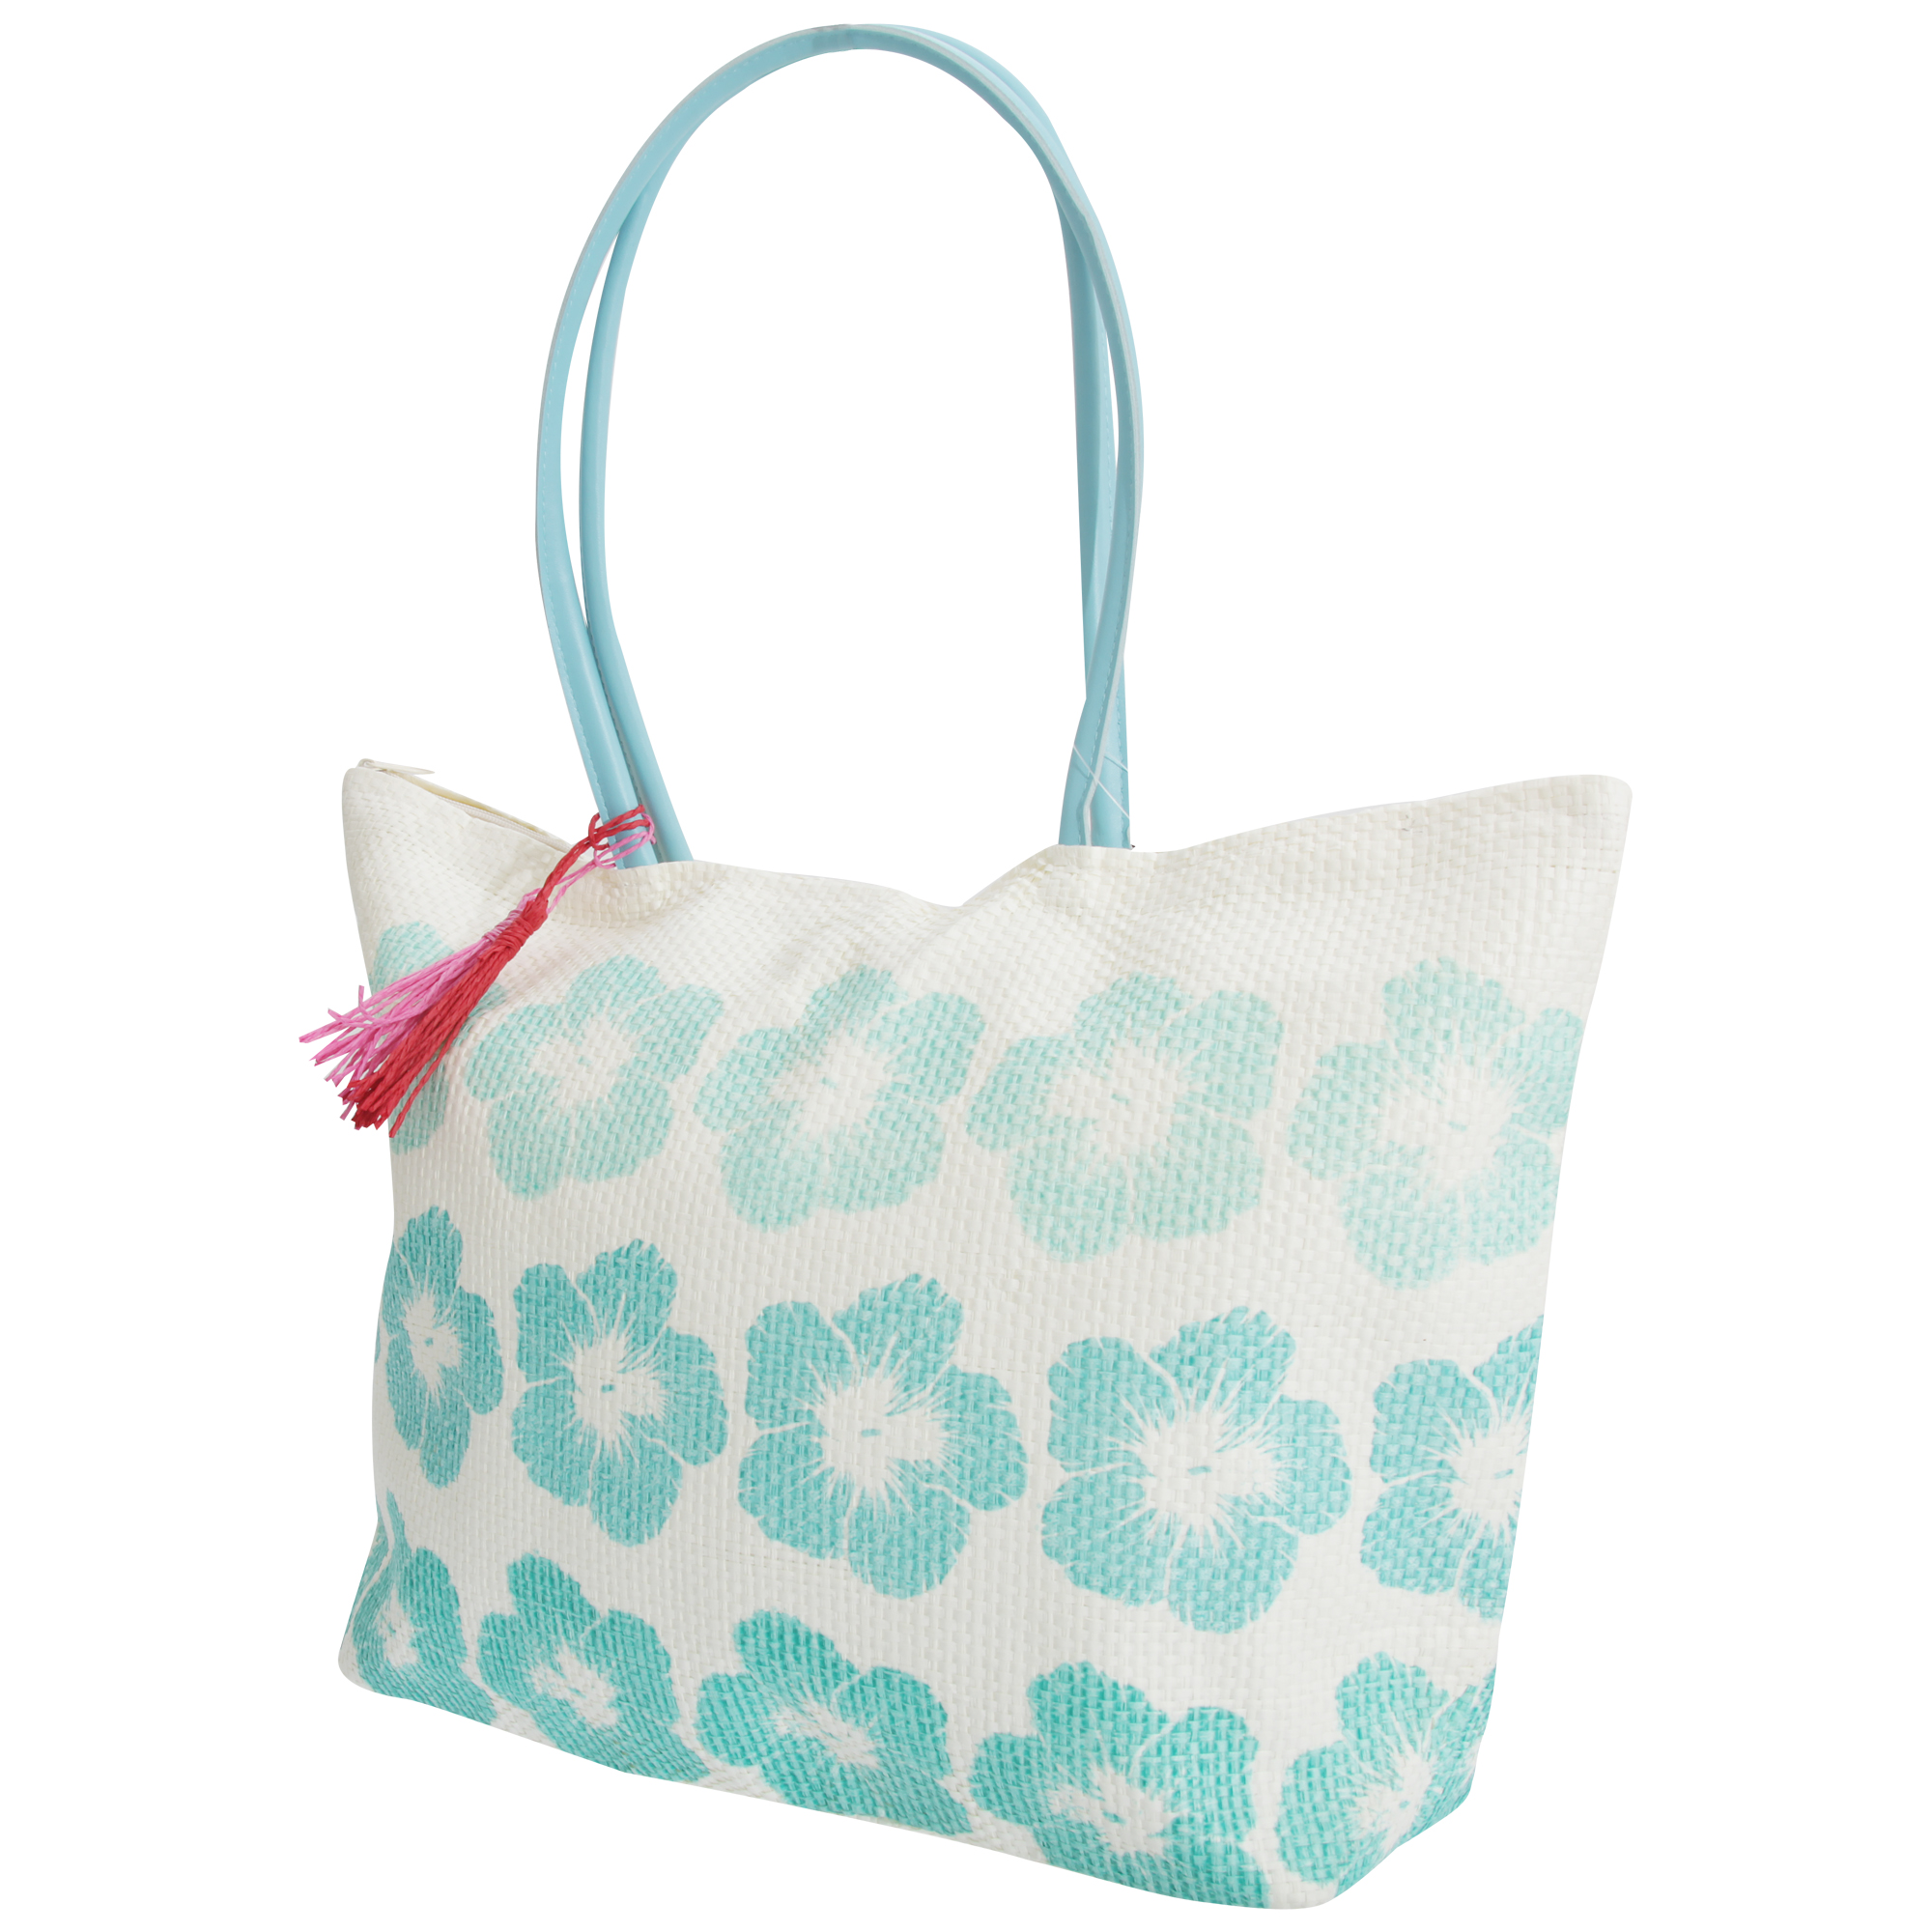 FLOSO Womens/Ladies Floral Pattern Woven Summer Handbag (One Size) (White/Turquoise)